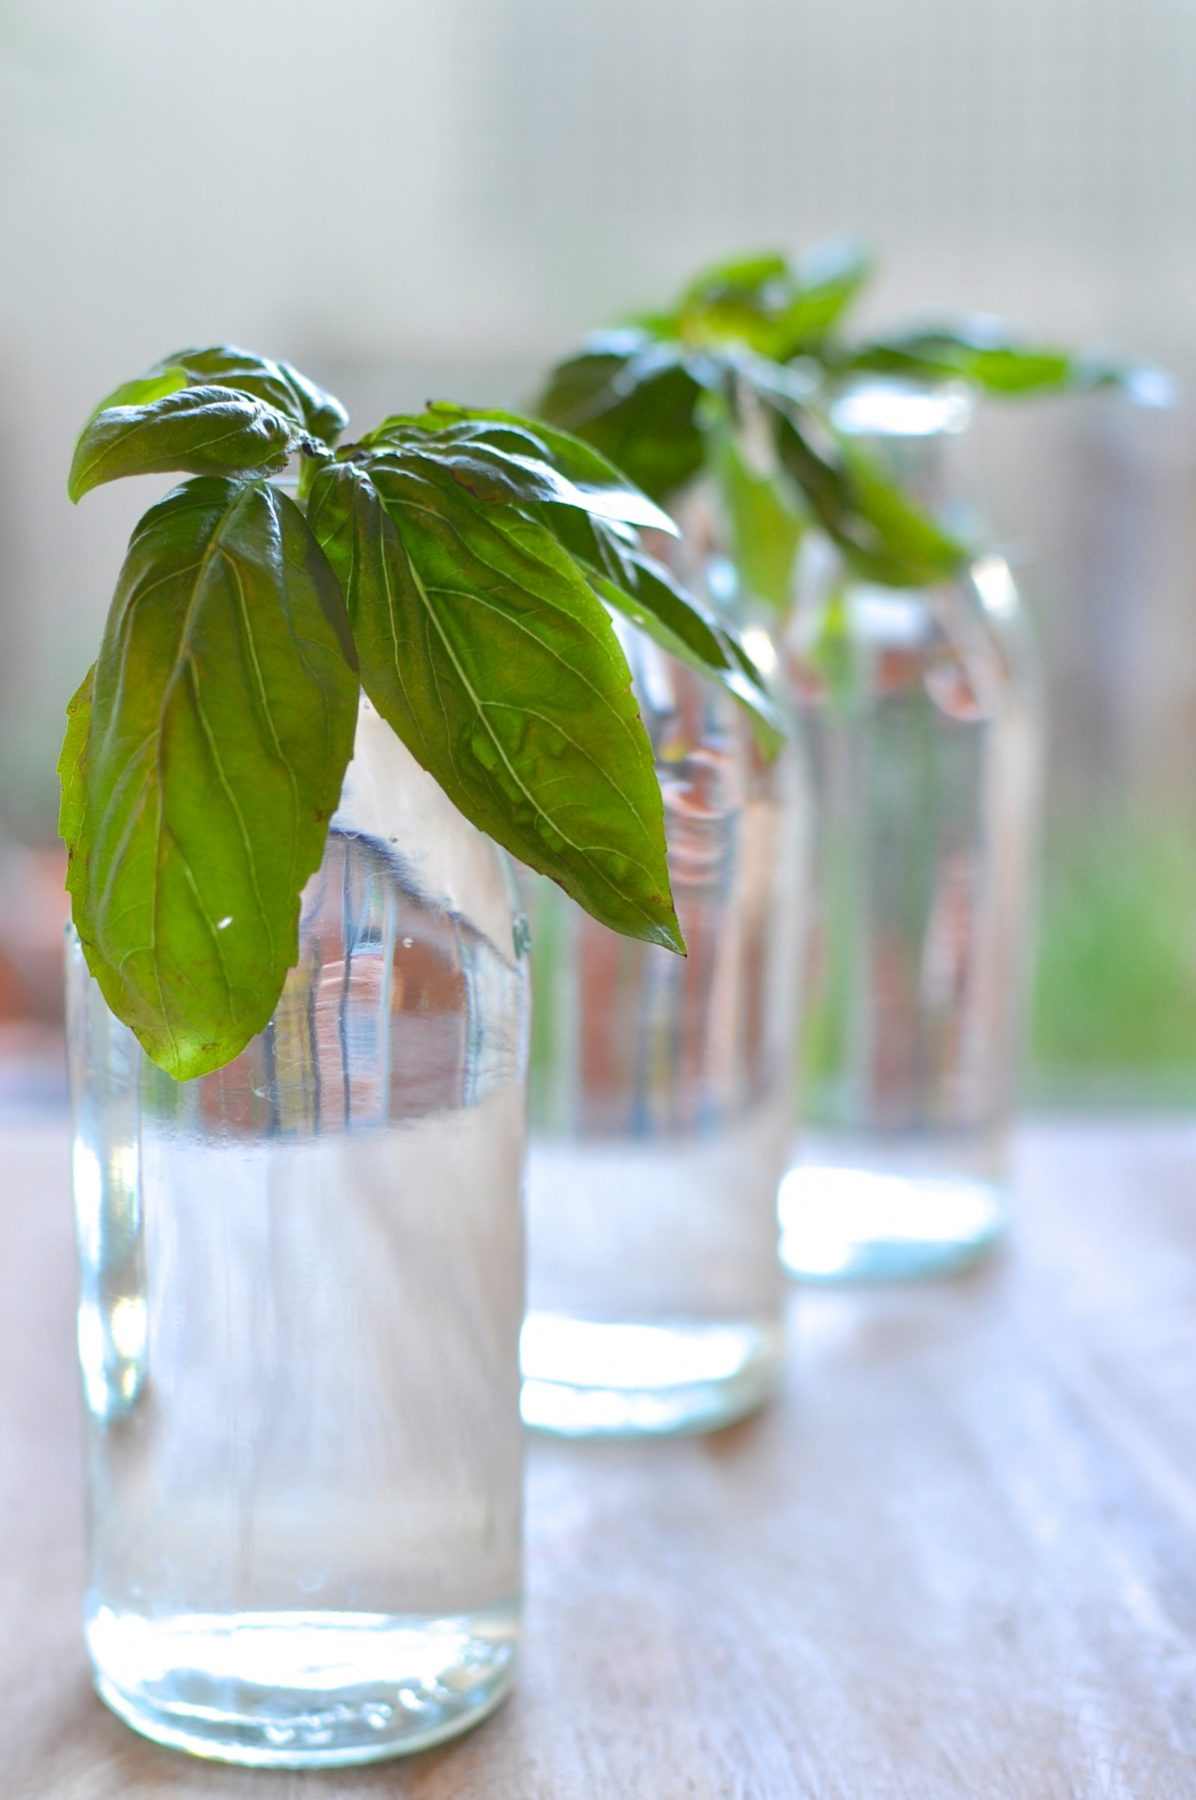 How to grow basil seedlings from cuttings